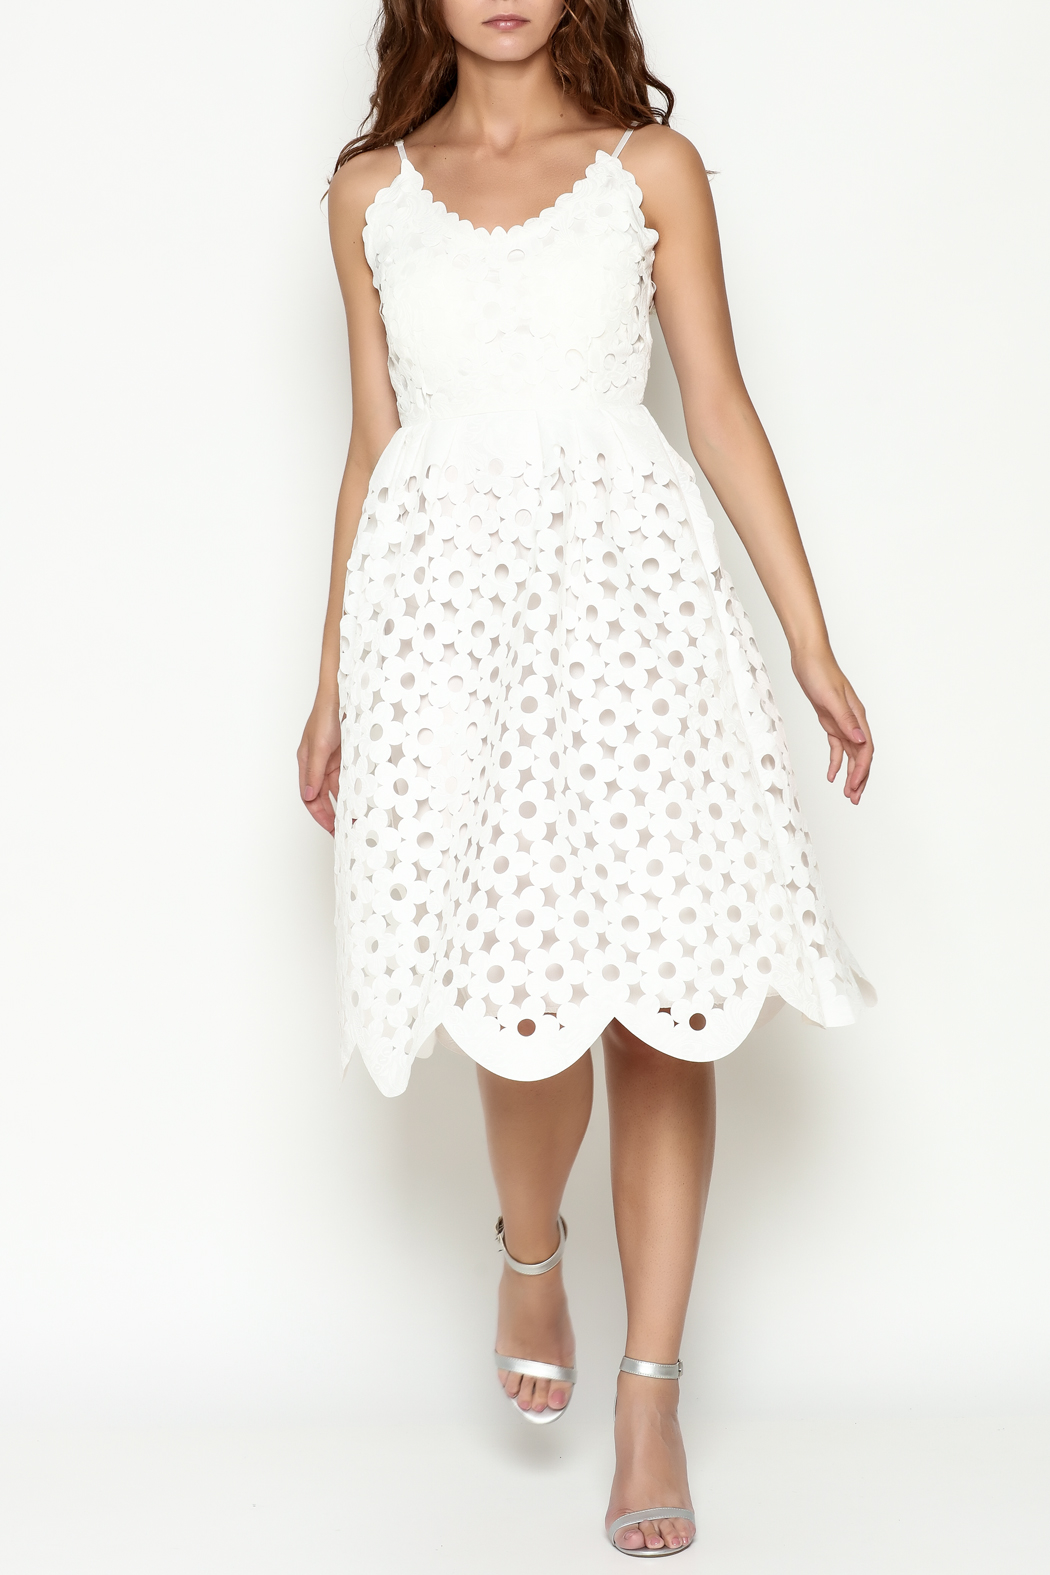 THINK CLOSET Lazer Cut Floral Dress - Front Cropped Image